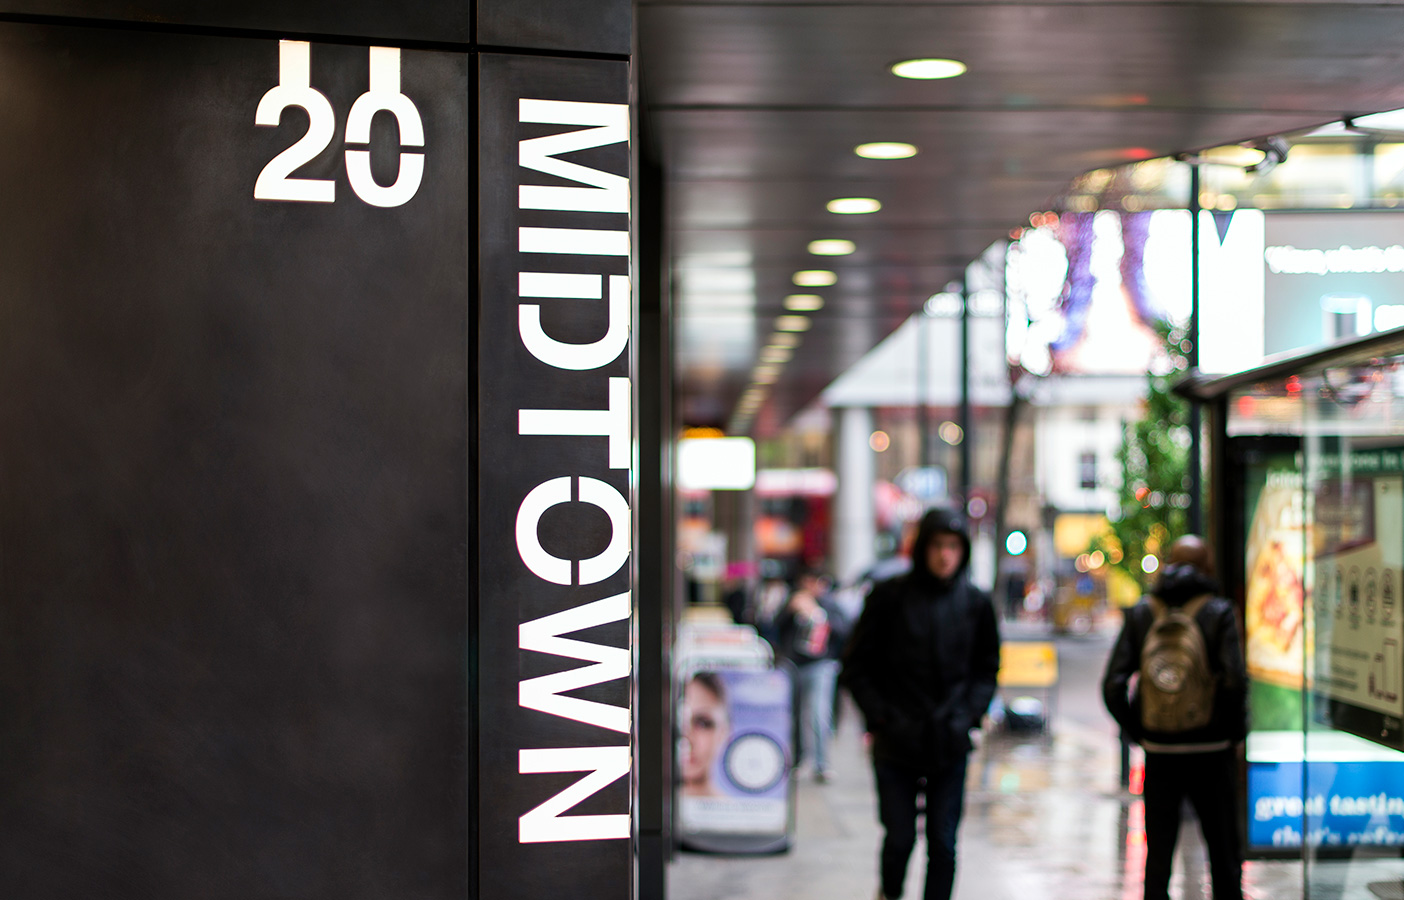 Aldworth James & Bond | 20 Midtown - Exterior signage